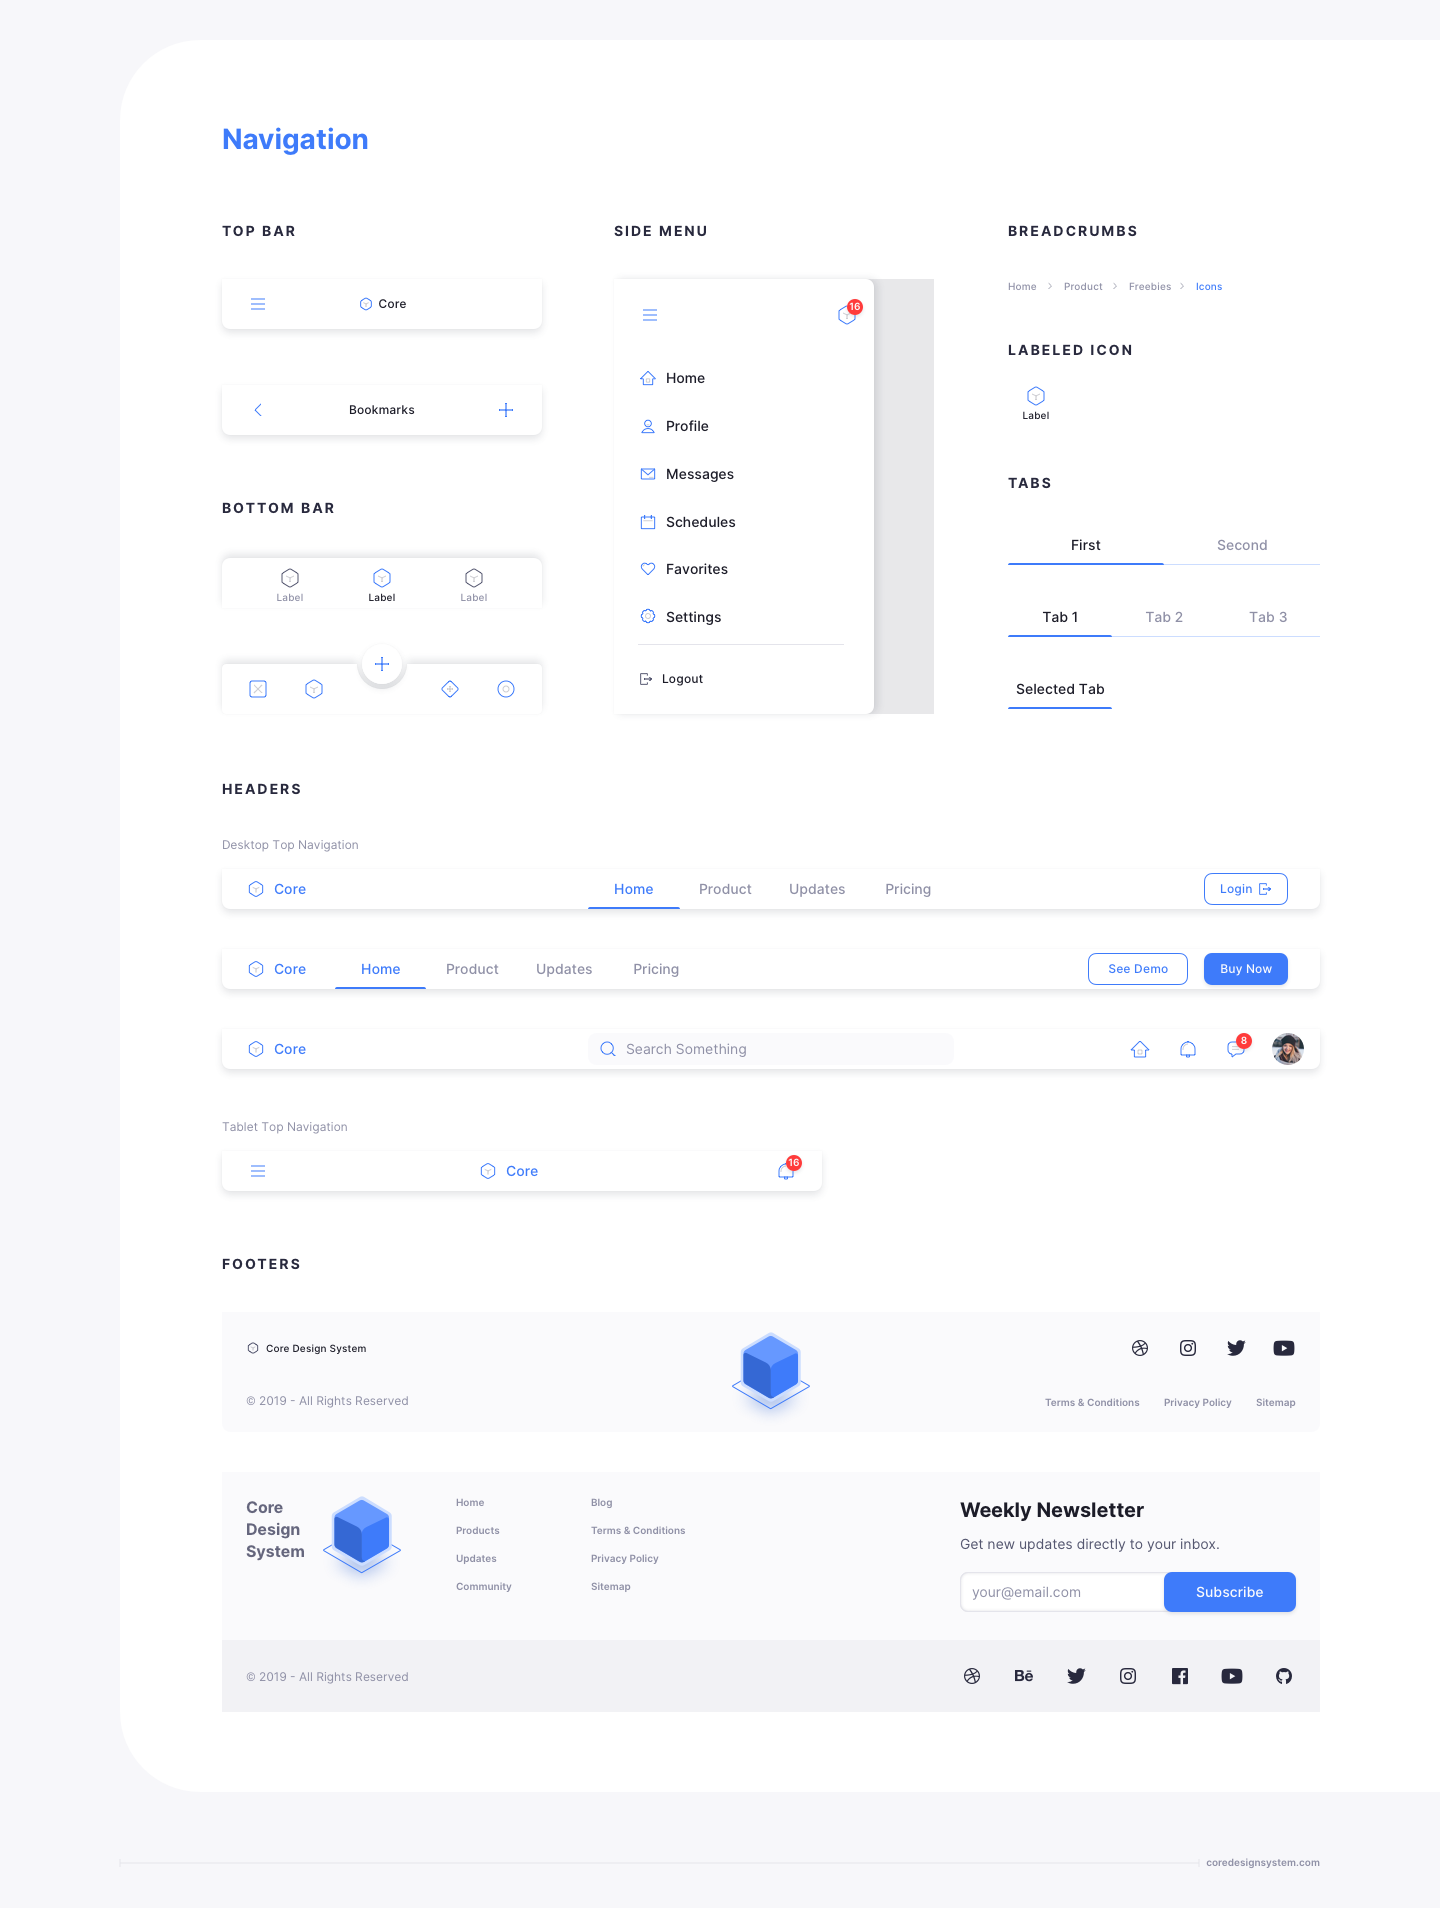 UX Design Navigation UI Component in light theme